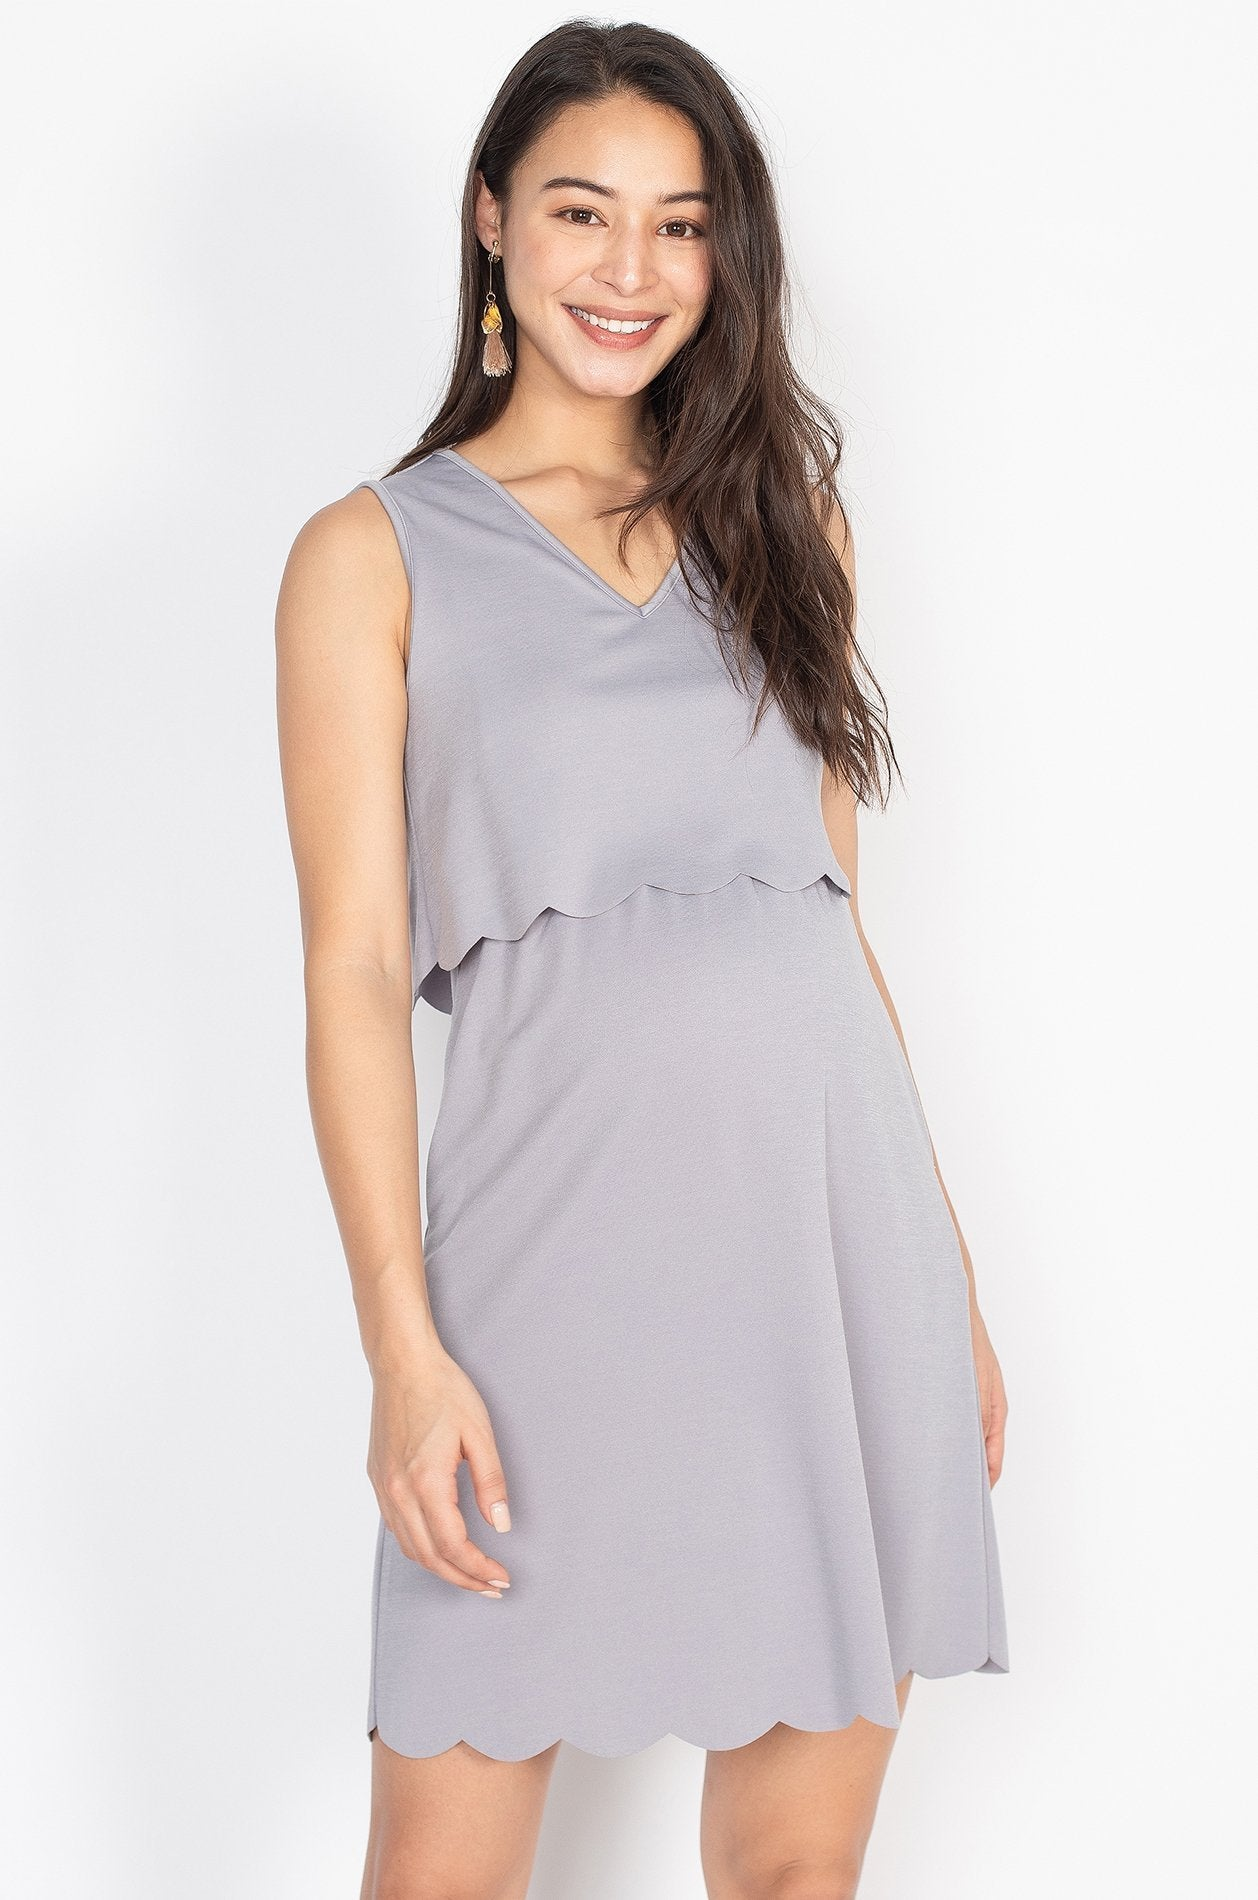 Elina Scallop Overlay Top Nursing Dress in Light Grey  by Jump Eat Cry - Maternity and nursing wear